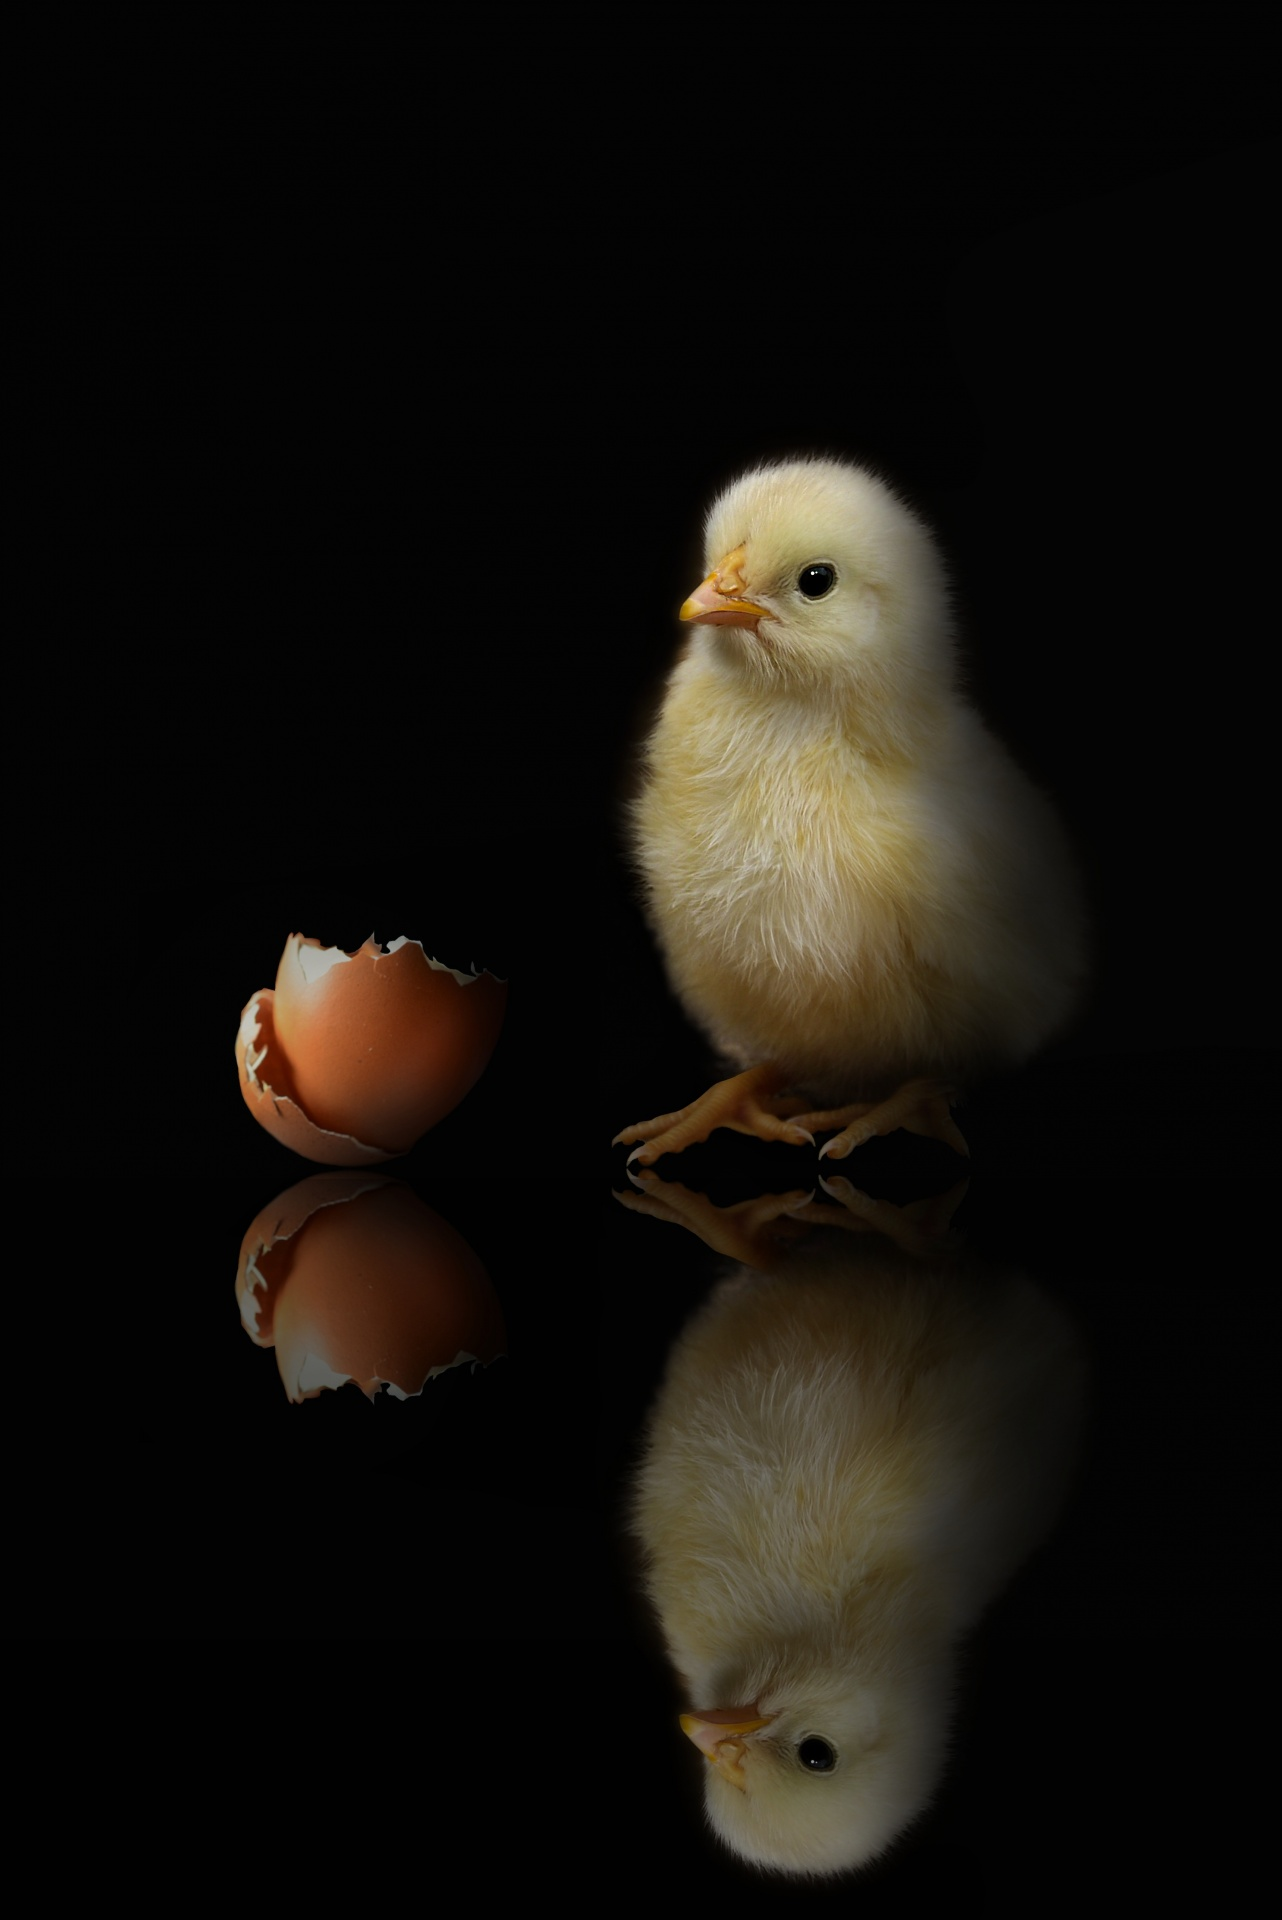 Cute Duck Hd Wallpaper Chick And Shell Black Background Free Stock Photo